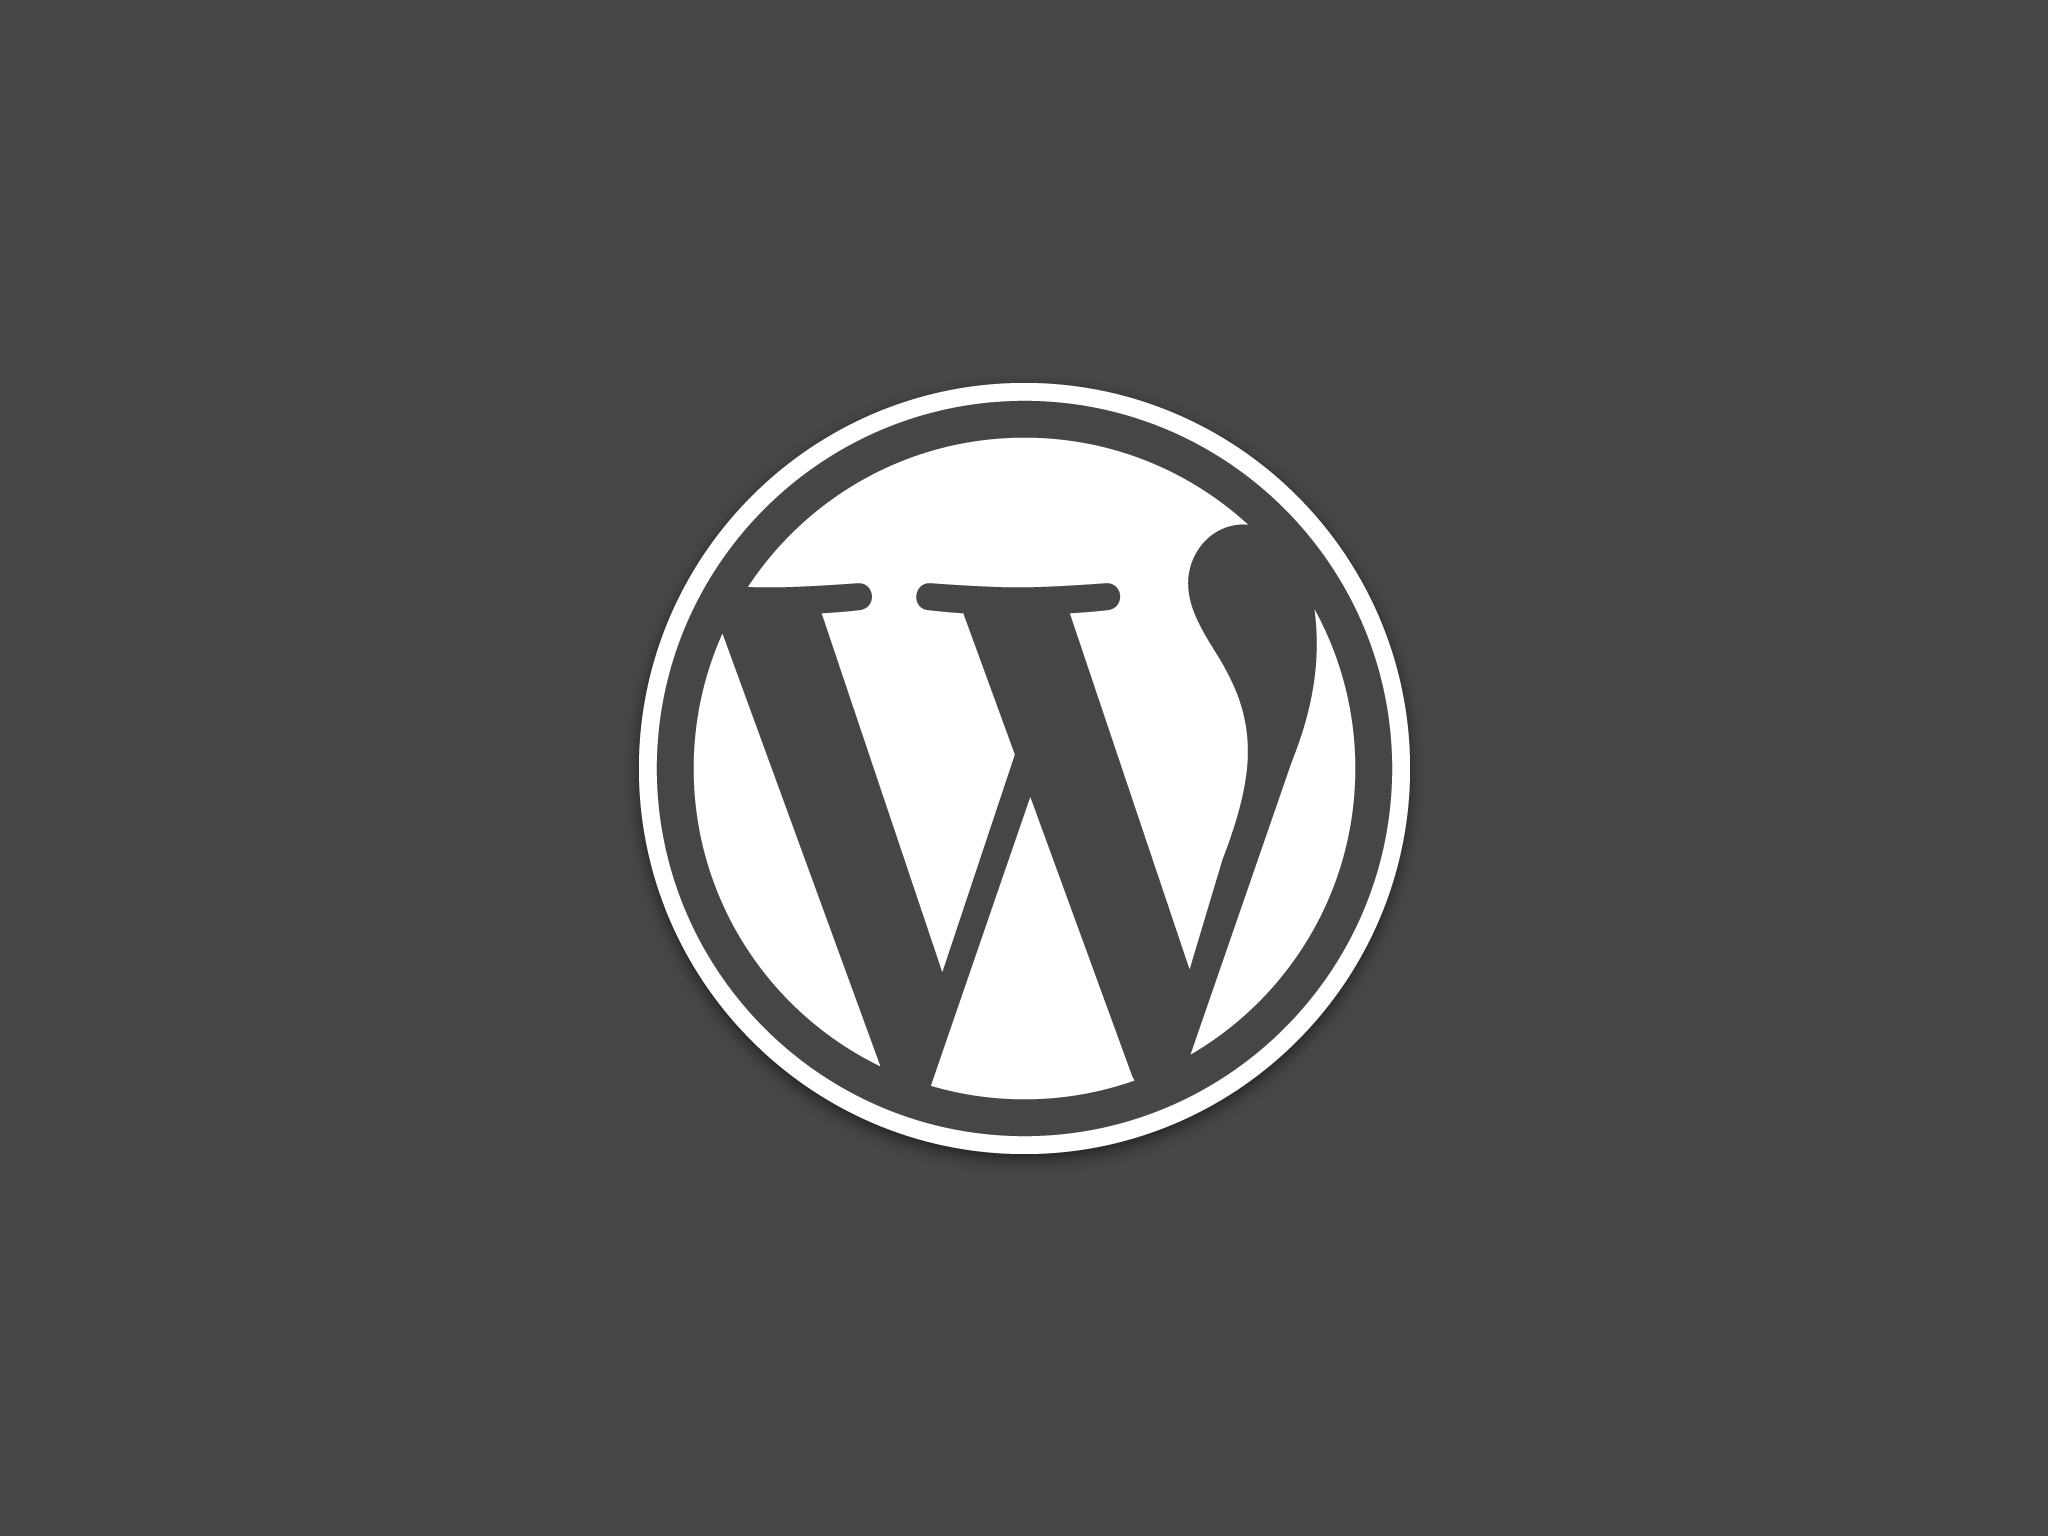 image logo in wordpress